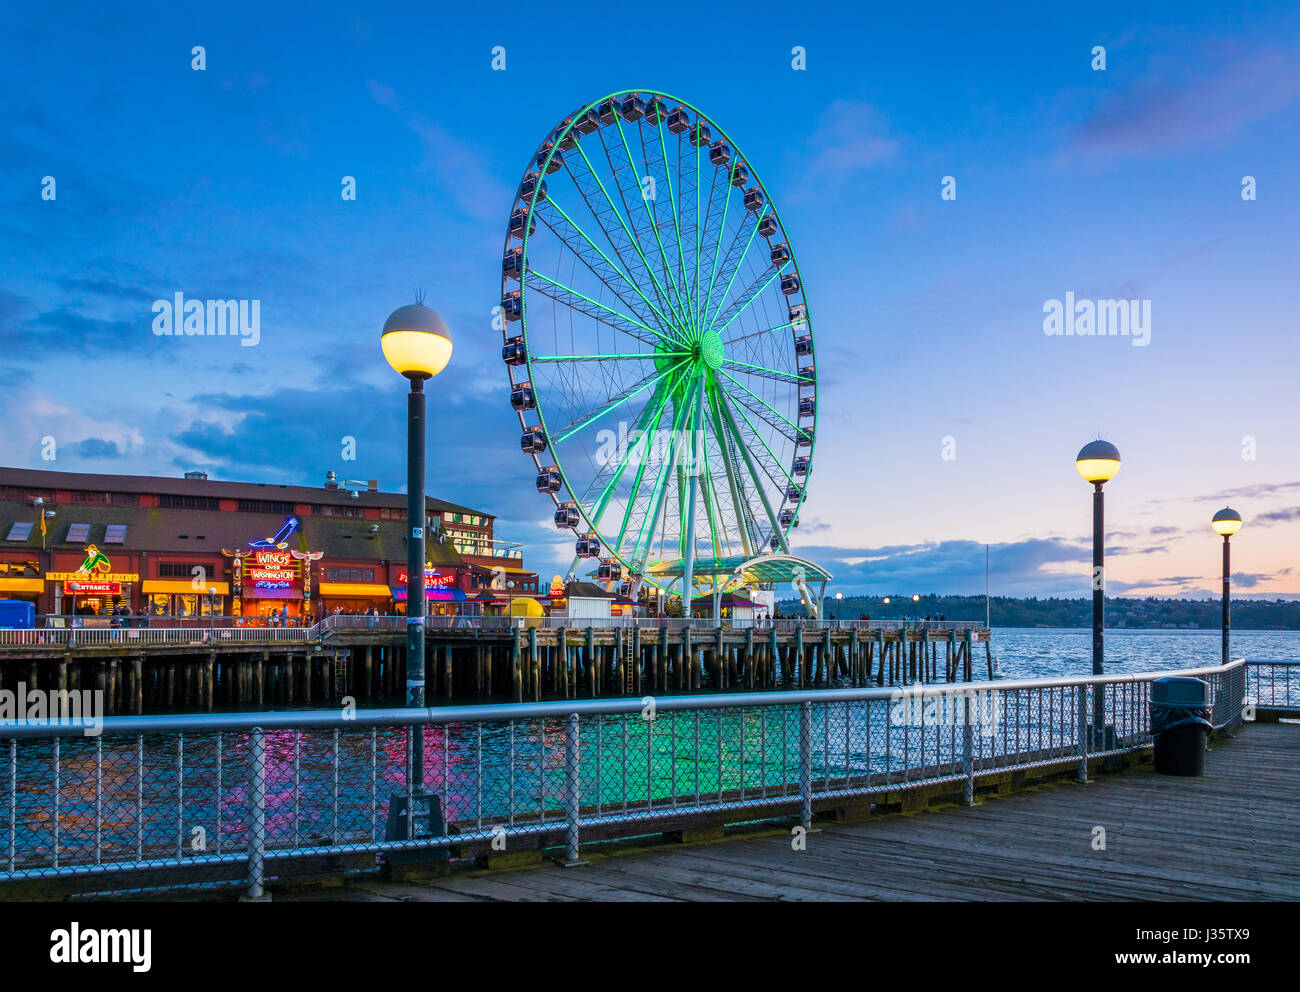 October Seattle Great Wheel Coupons, Promo Codes, Sales. Save your money today and grab yourself a bargain. Just choose what you prefer at Seattle Great Wheel and enjoy May Seattle Great Wheel Coupons, Promo Codes, Sales.